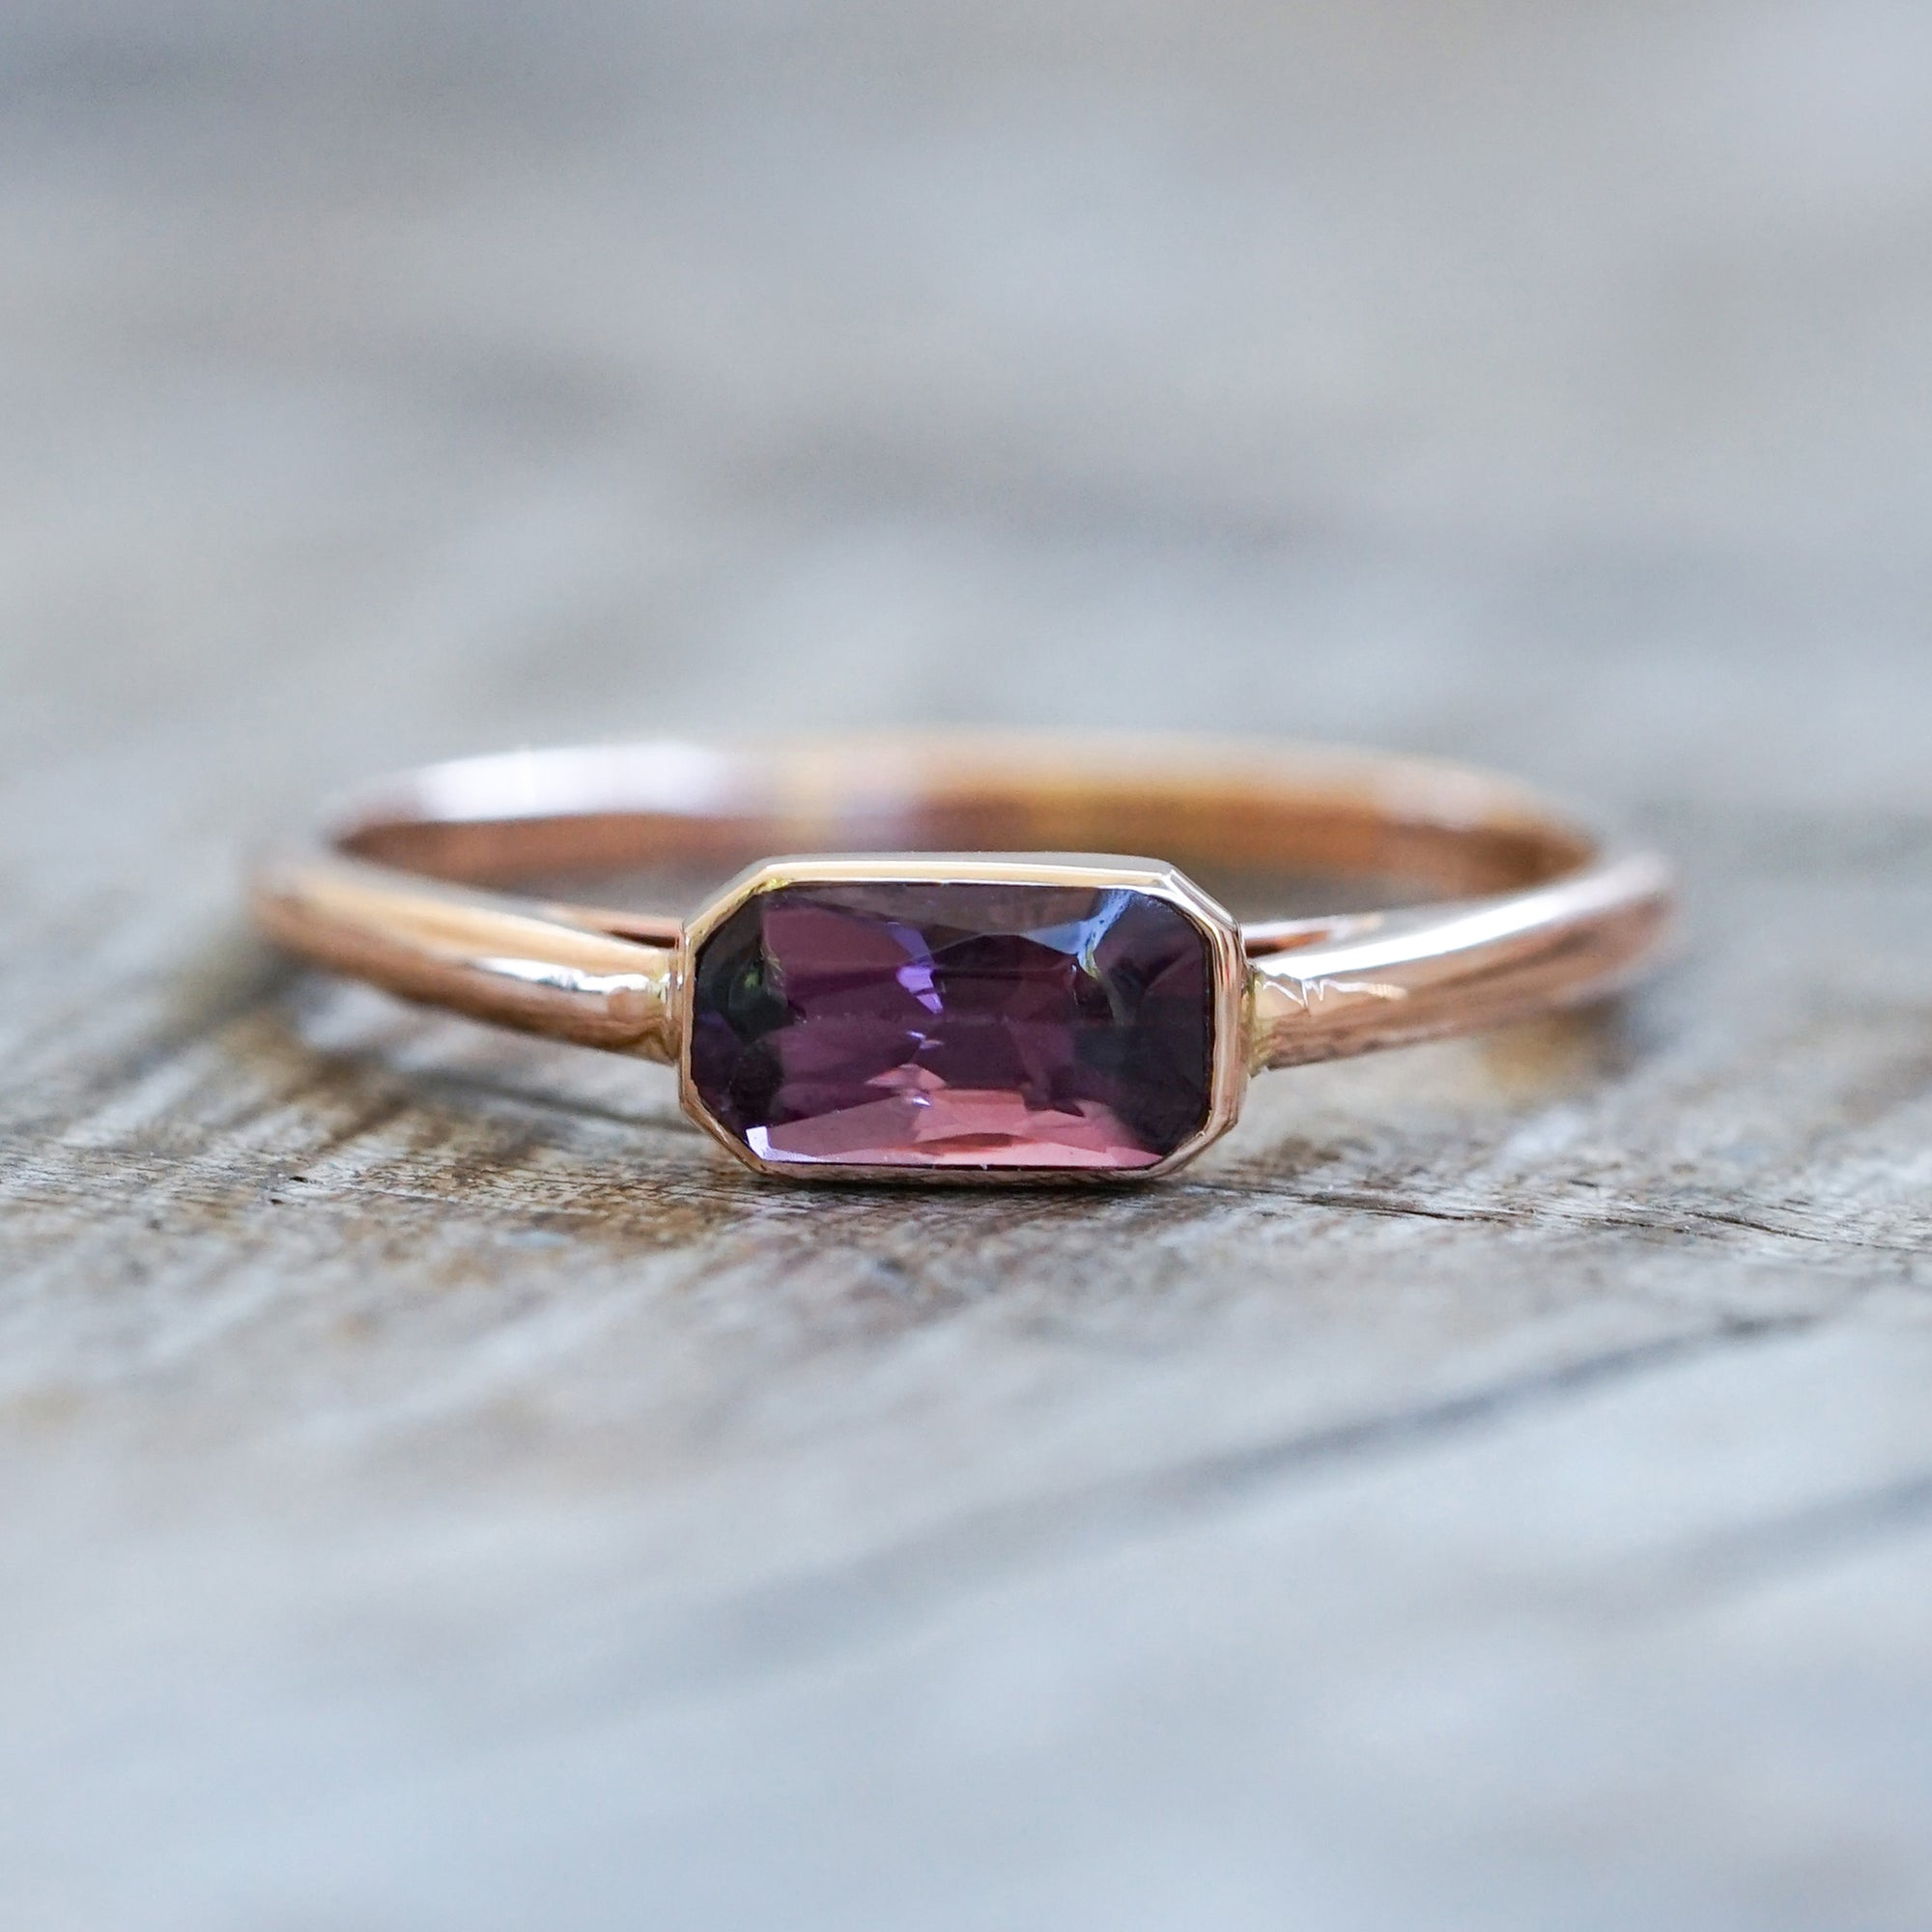 Berry Spinel Ring in Gold - Gardens of the Sun Jewelry